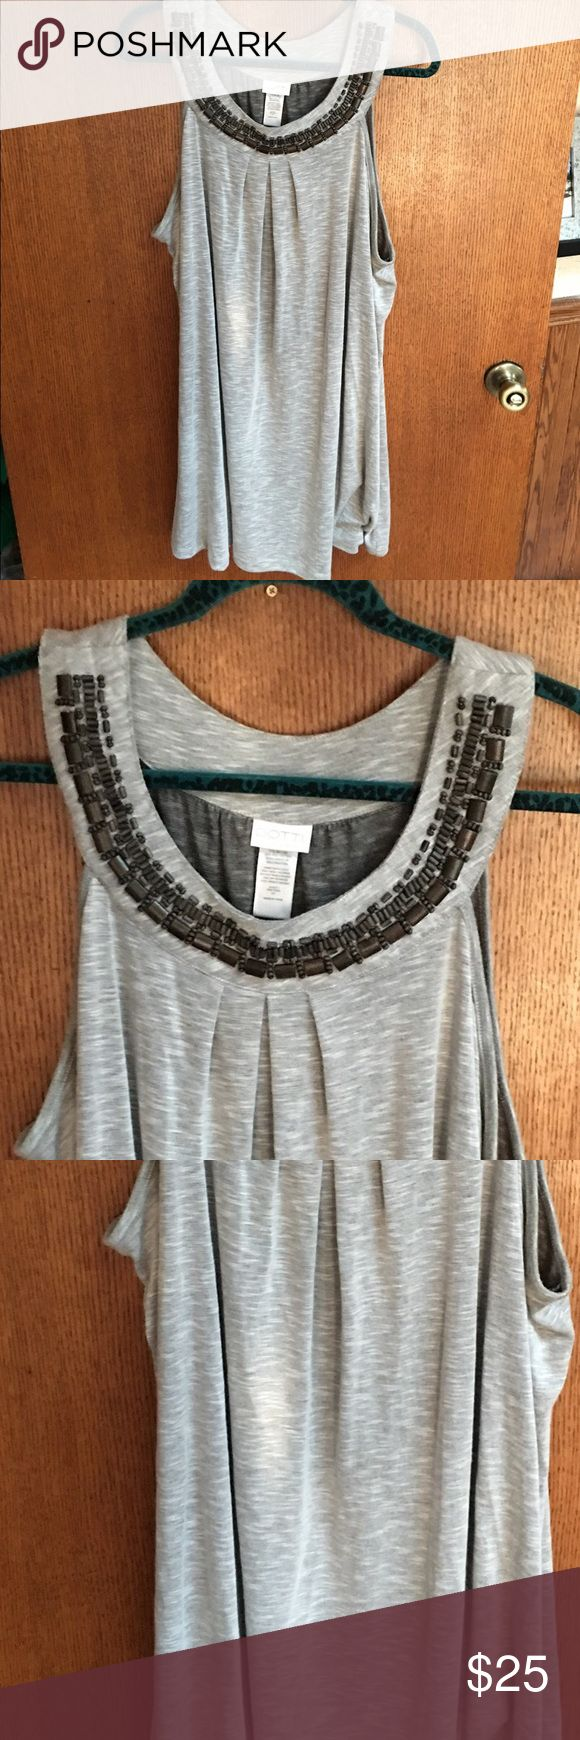 Women's 2X loose fit dress Women's 2X loose fit dress. Has beautiful beads all around the front collar. Like new/great condition. Worn maybe 2 times, 1 for sure. Great summer dress & super cute with Capri or under the knee leggings. Dotti Dresses Midi